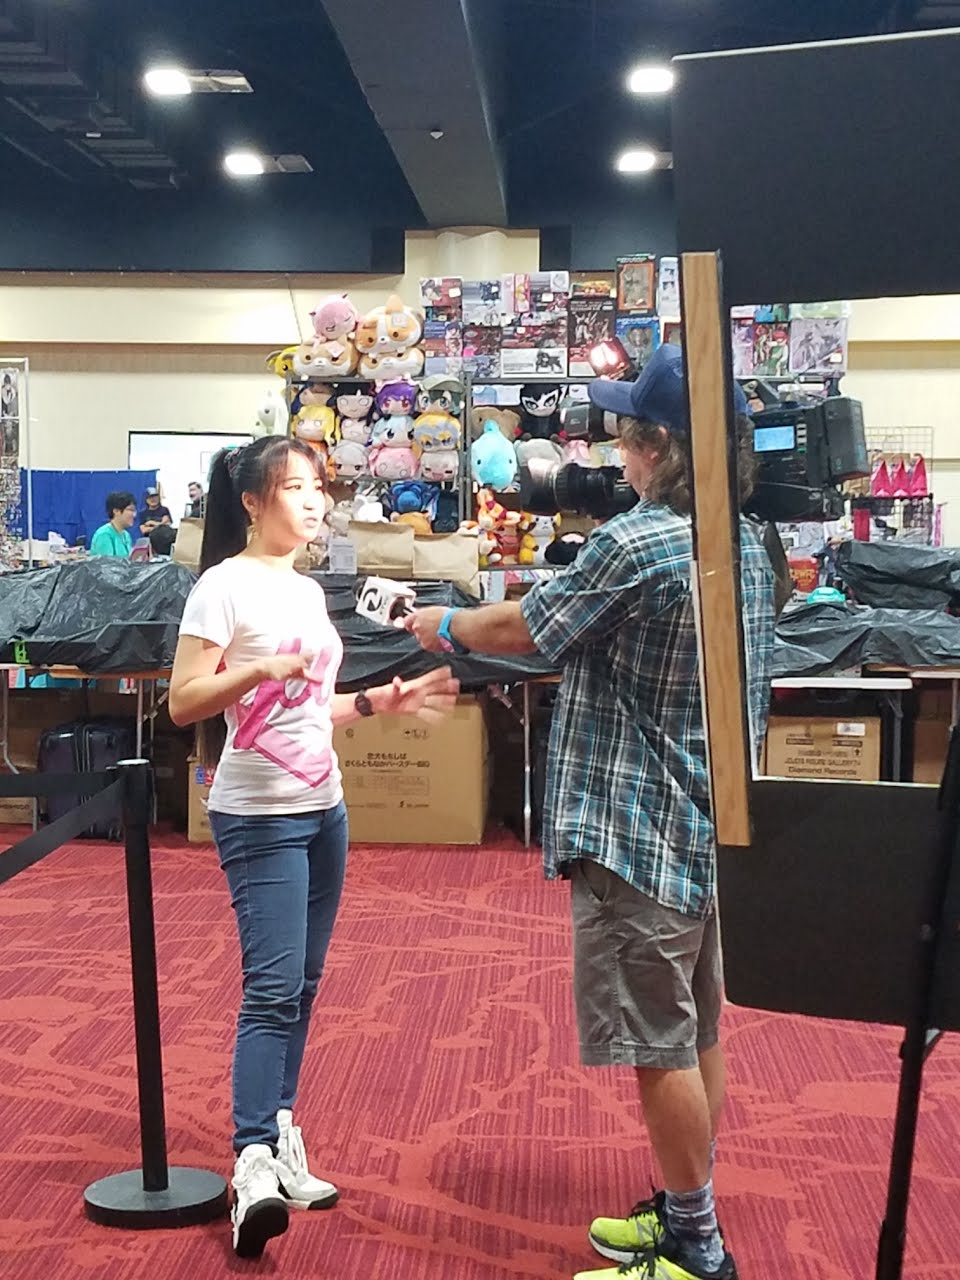 Xanthe_Huynh_KrakenCon_Local_News_Interview